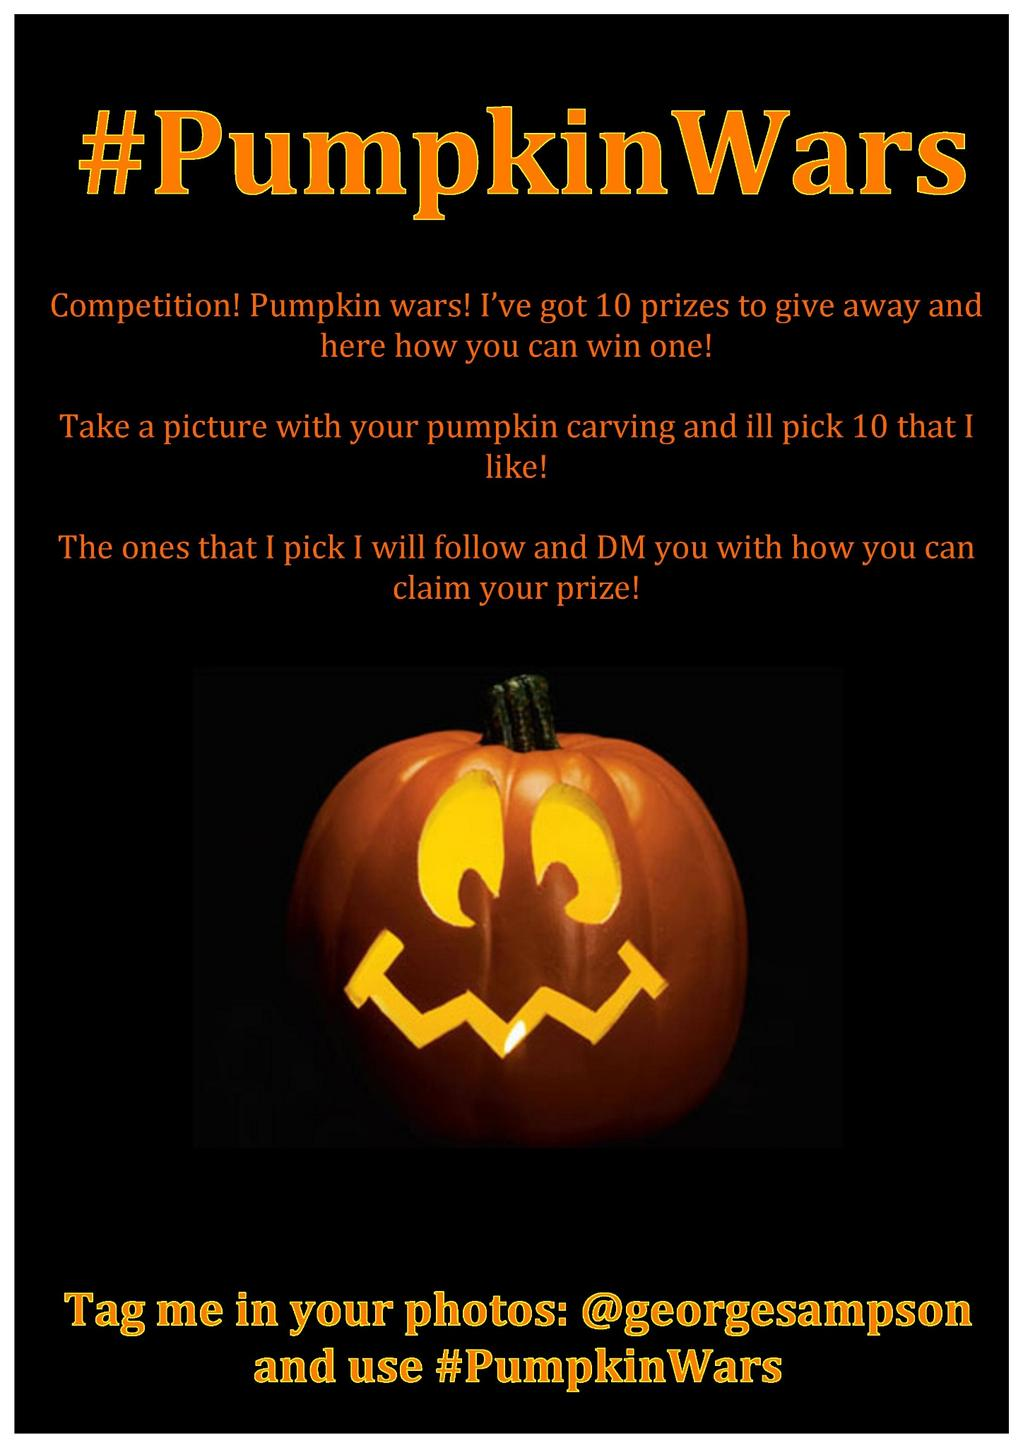 #PumpkinWars Tweet me a picture of you and your pumpkins together and ill pick my faves! GO! http://t.co/CIwXSlPgcH